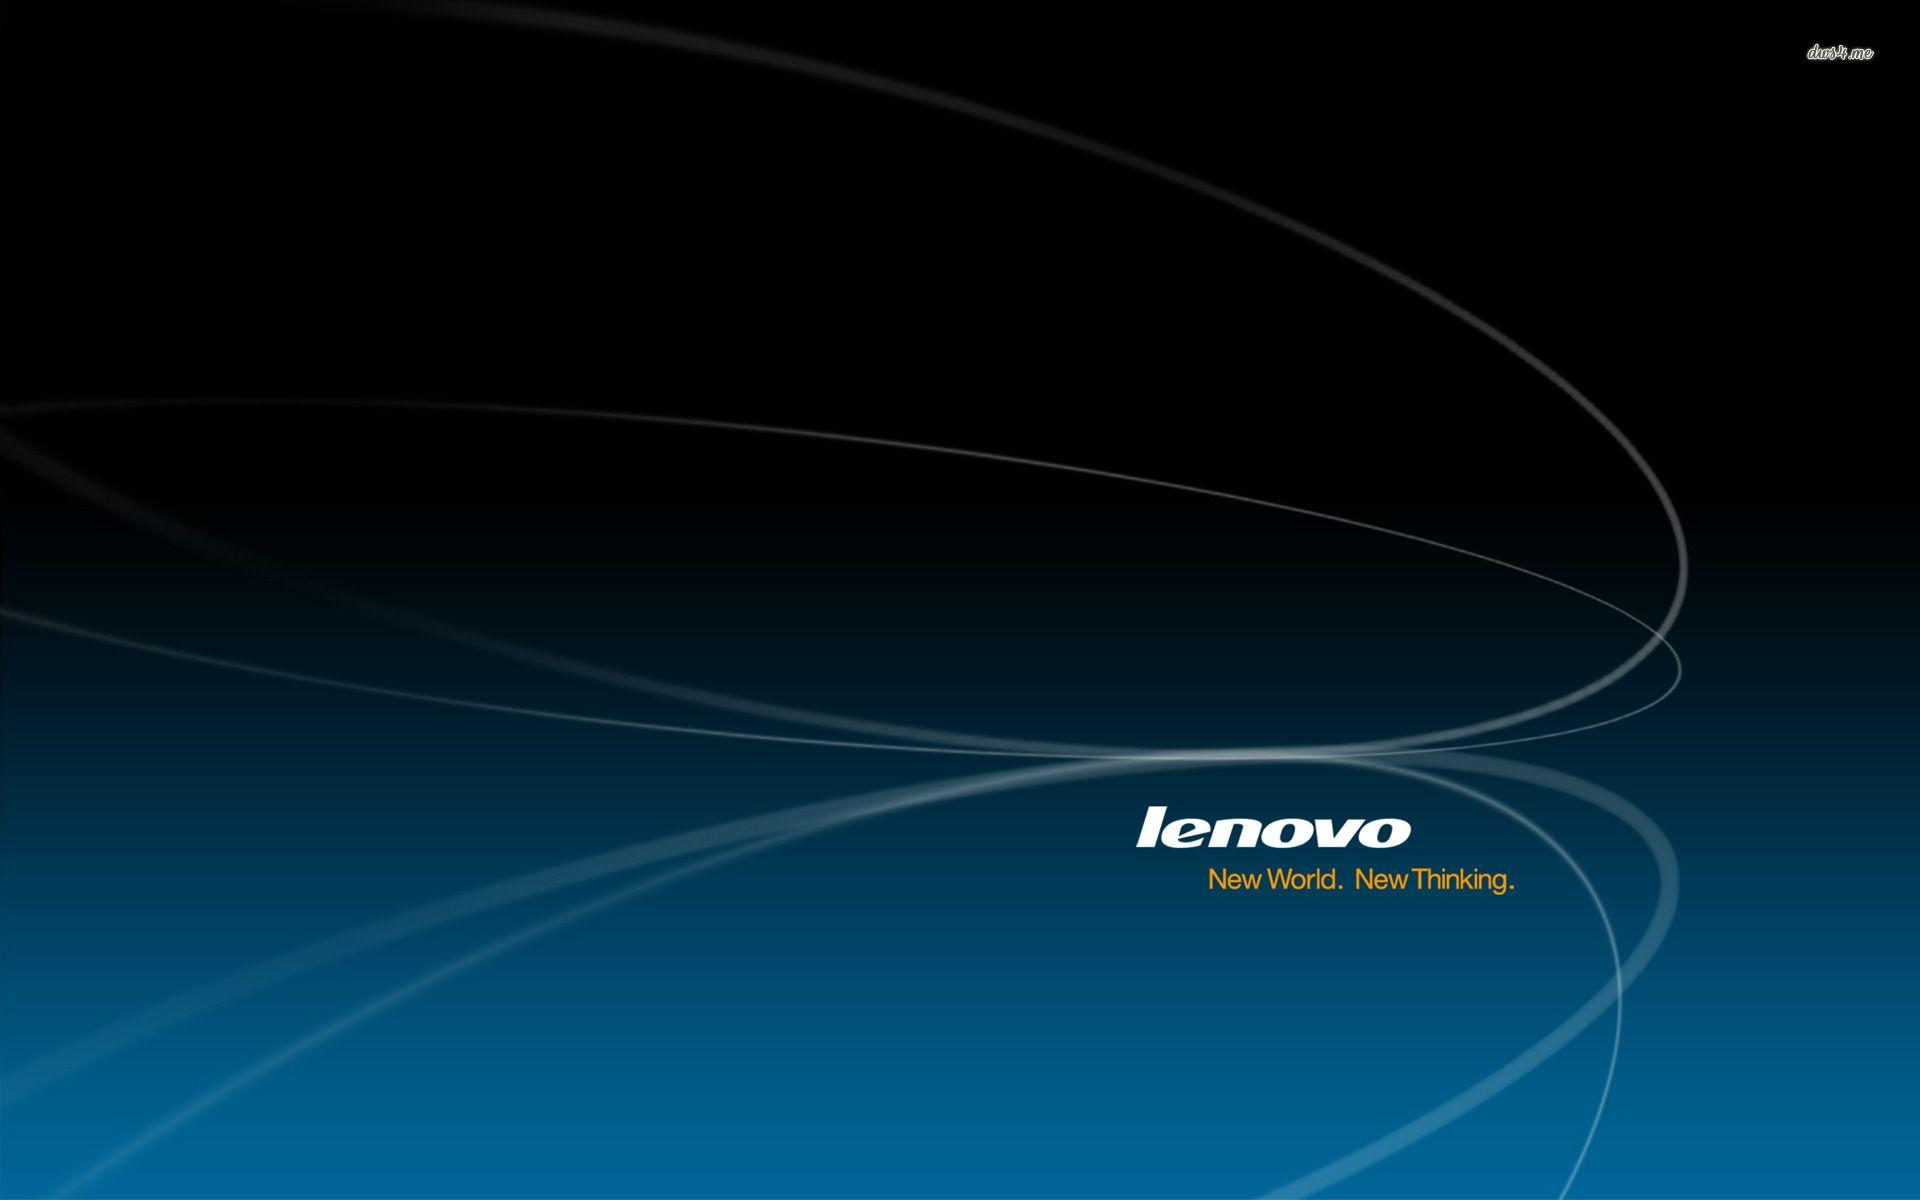 Lenovo wallpapers wallpaper cave lenovo wallpapers hd windows wallpapers gumiabroncs Gallery